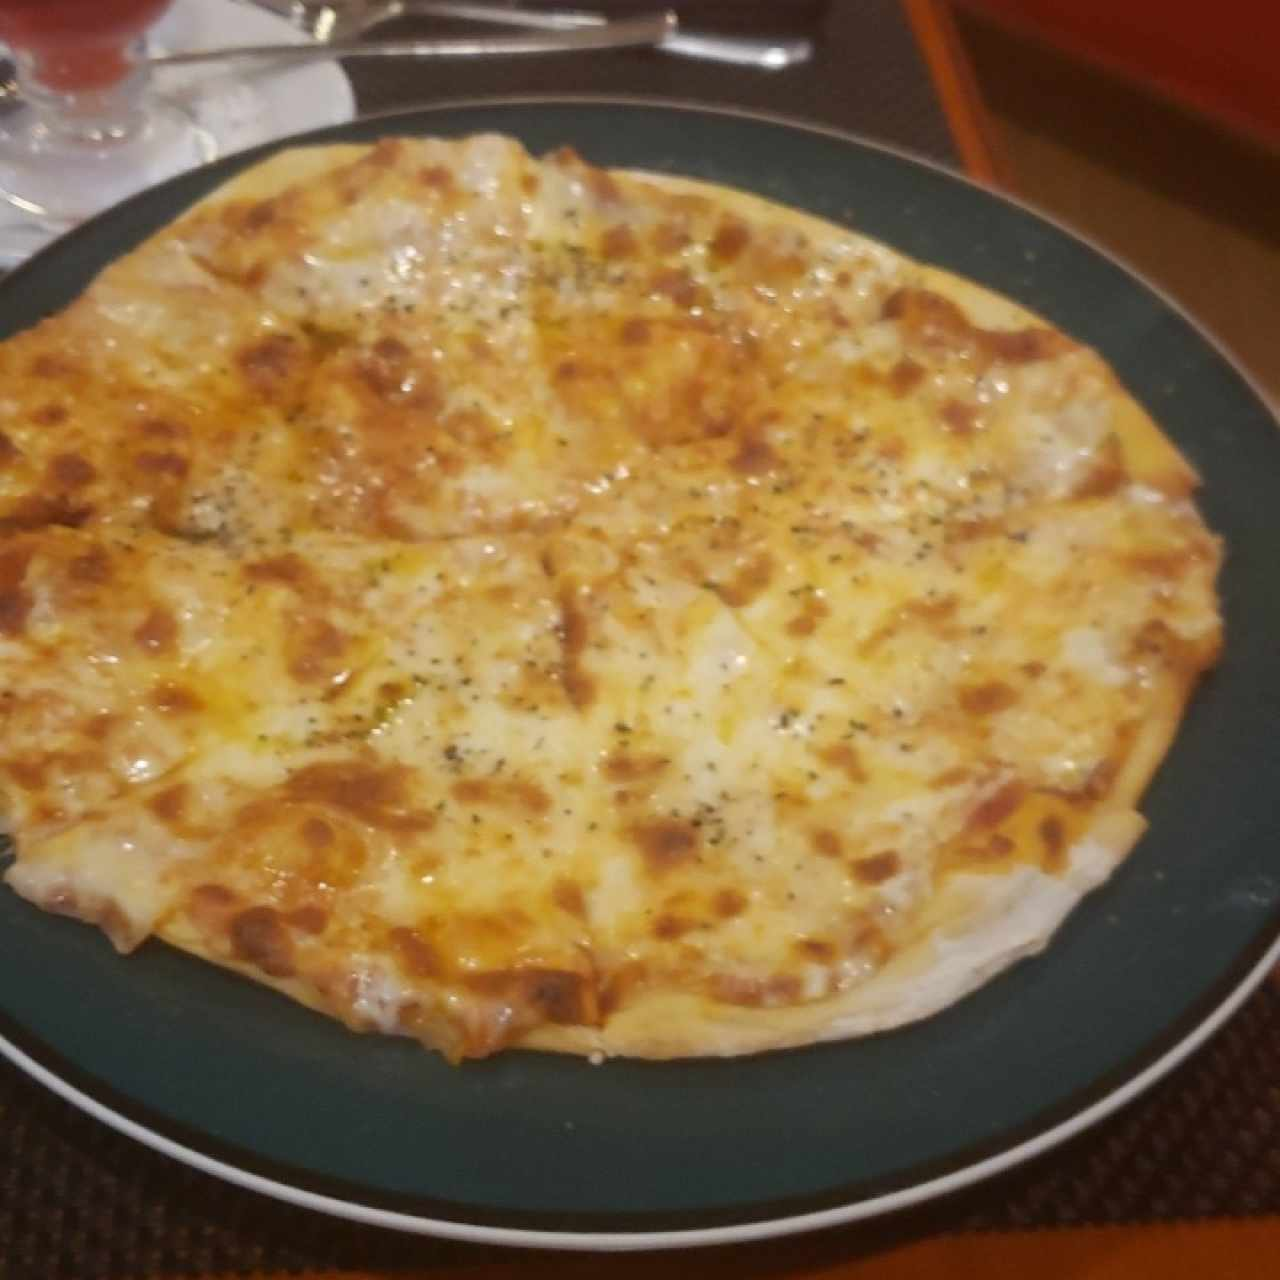 pizza margarita!! Espectacular